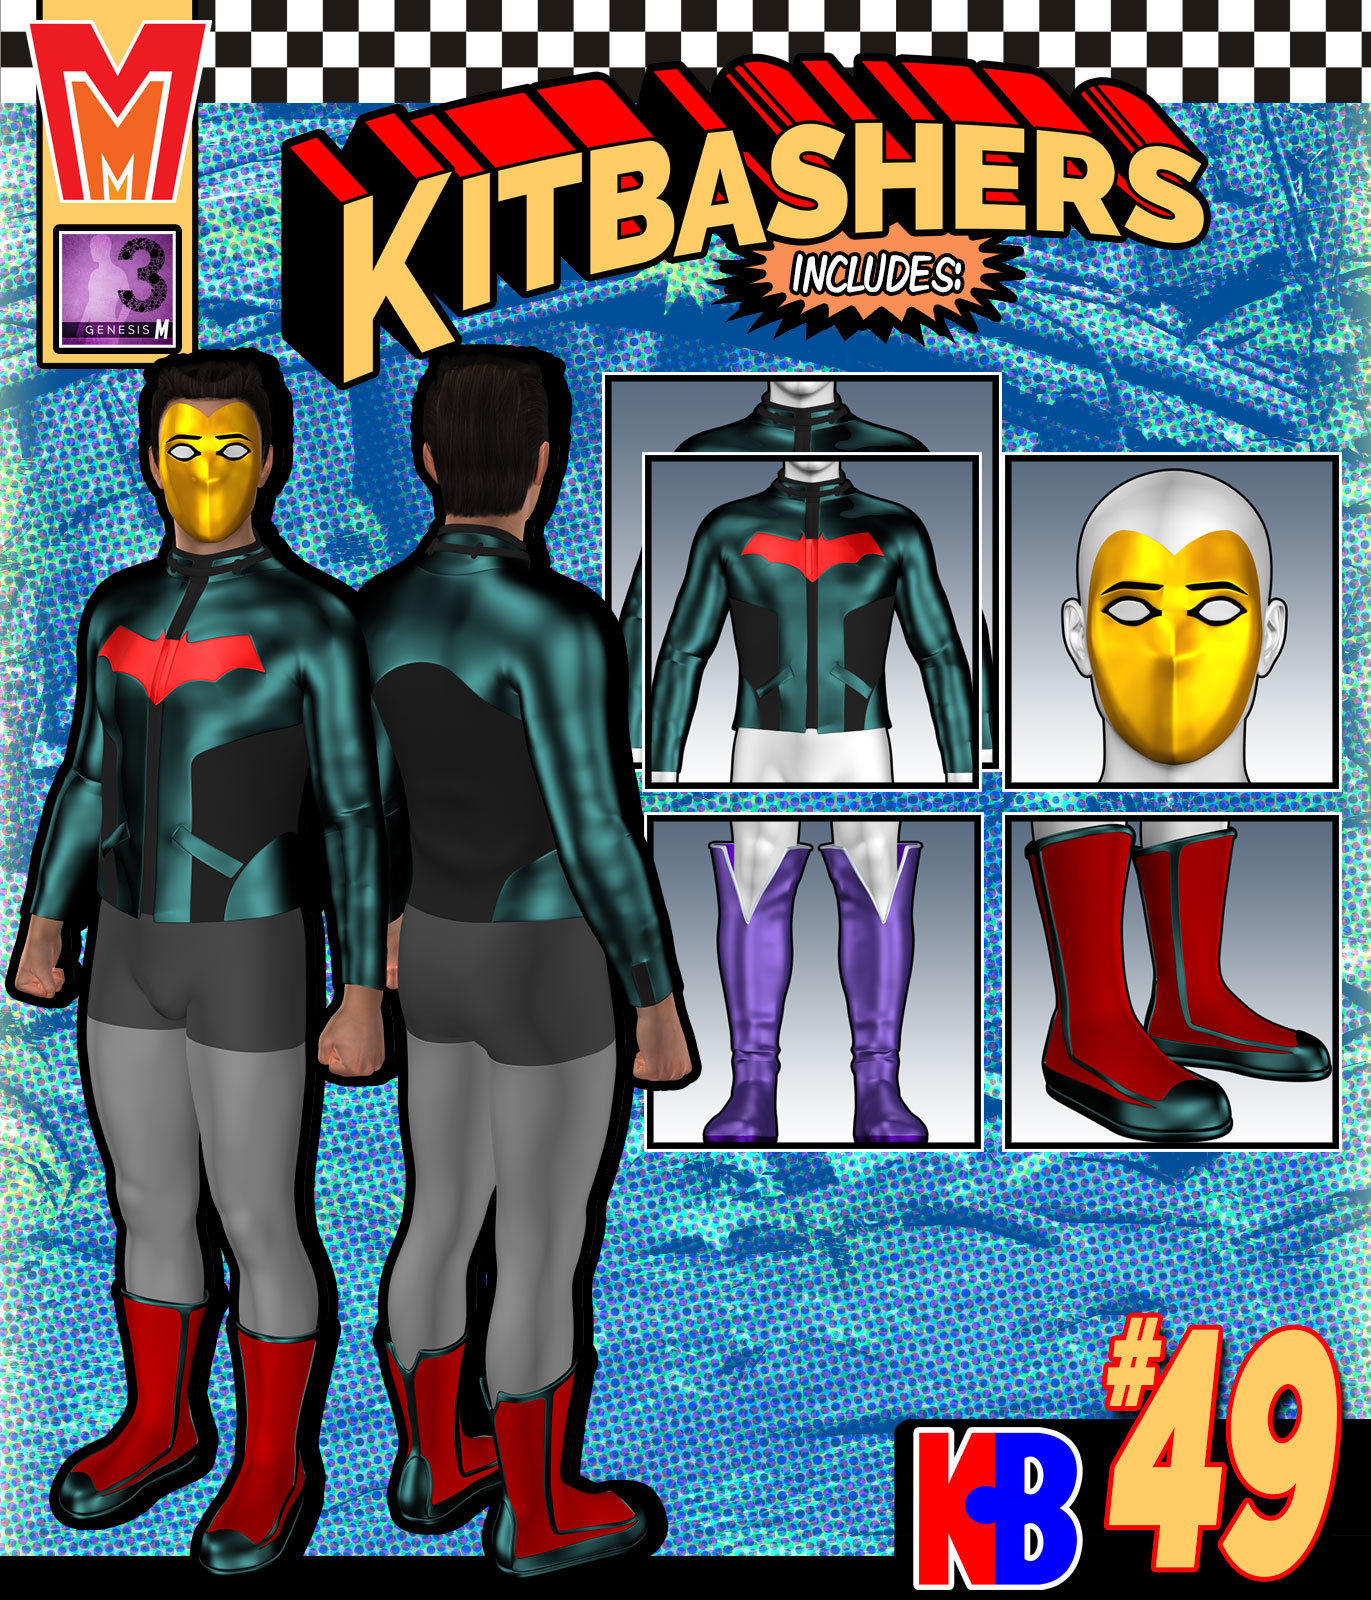 Kitbashers 049 MMG3M by MightyMite